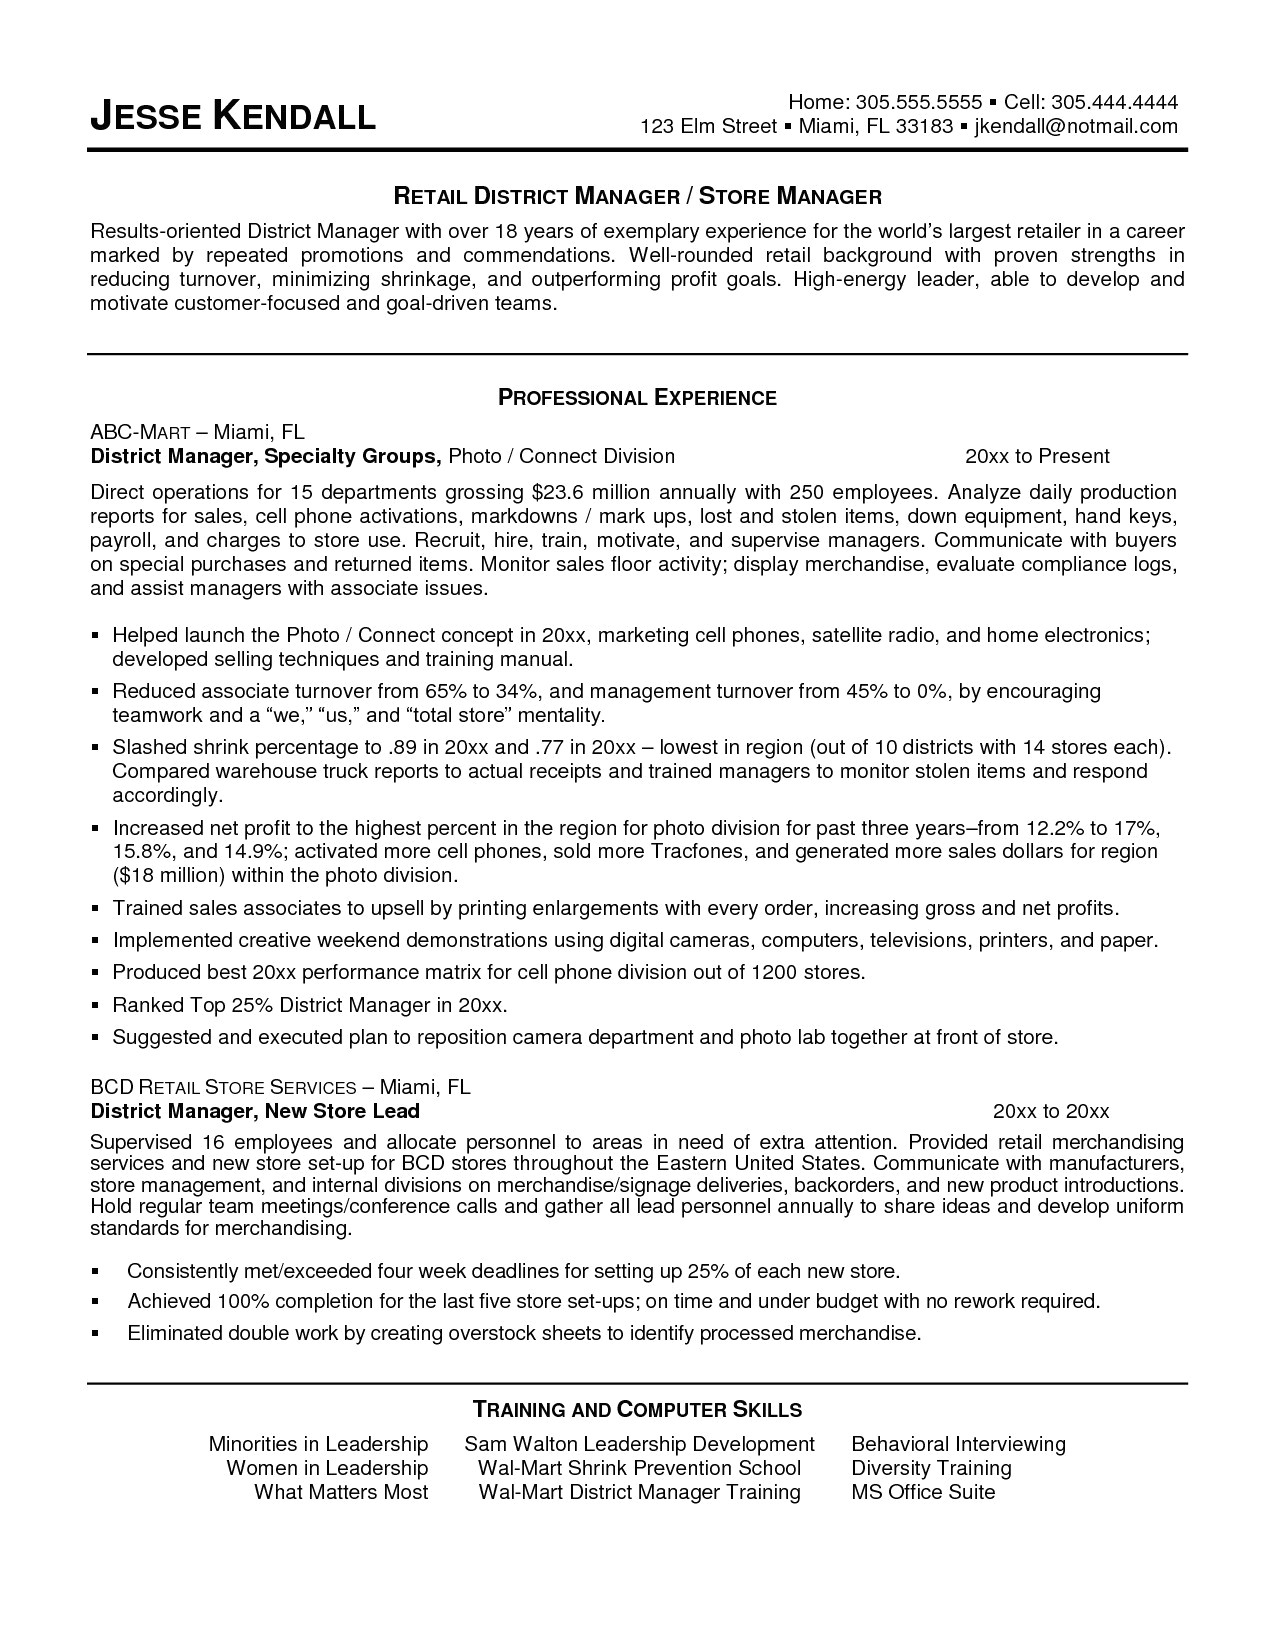 Latex Resume Template Reddit - 44 Standard Resume Templates Latex